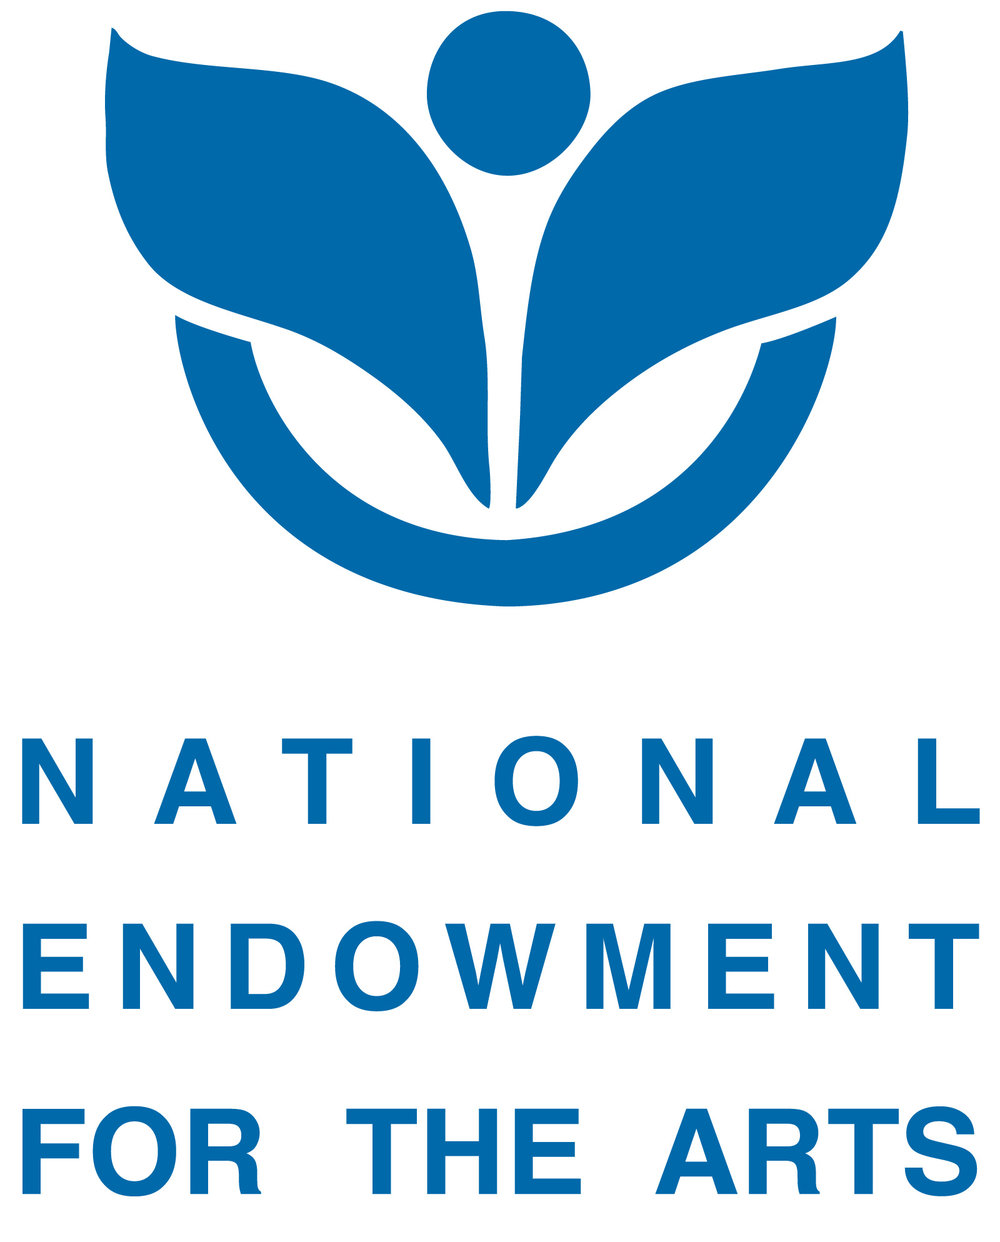 National-Endowment-for-the-Arts-Logo.jpg